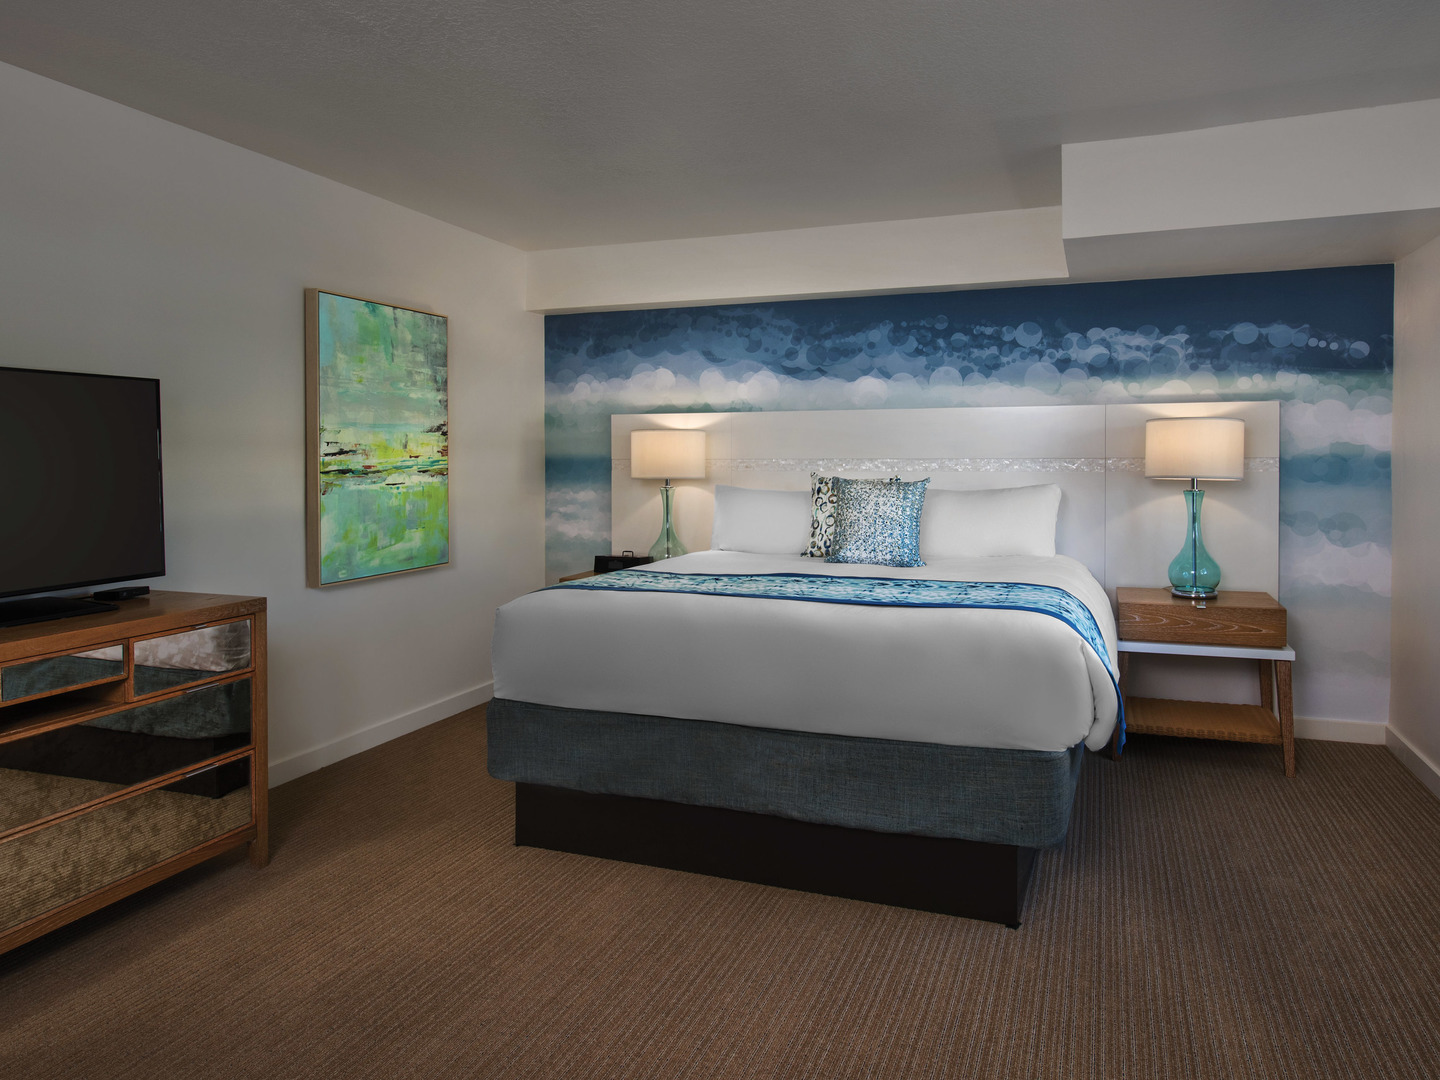 Marriott Vacation Club Pulse<span class='trademark'>®</span>, South Beach 2-Bedroom Suite Master Bedroom. Marriott Vacation Club Pulse<span class='trademark'>®</span>, South Beach is located in Miami Beach, Florida United States.